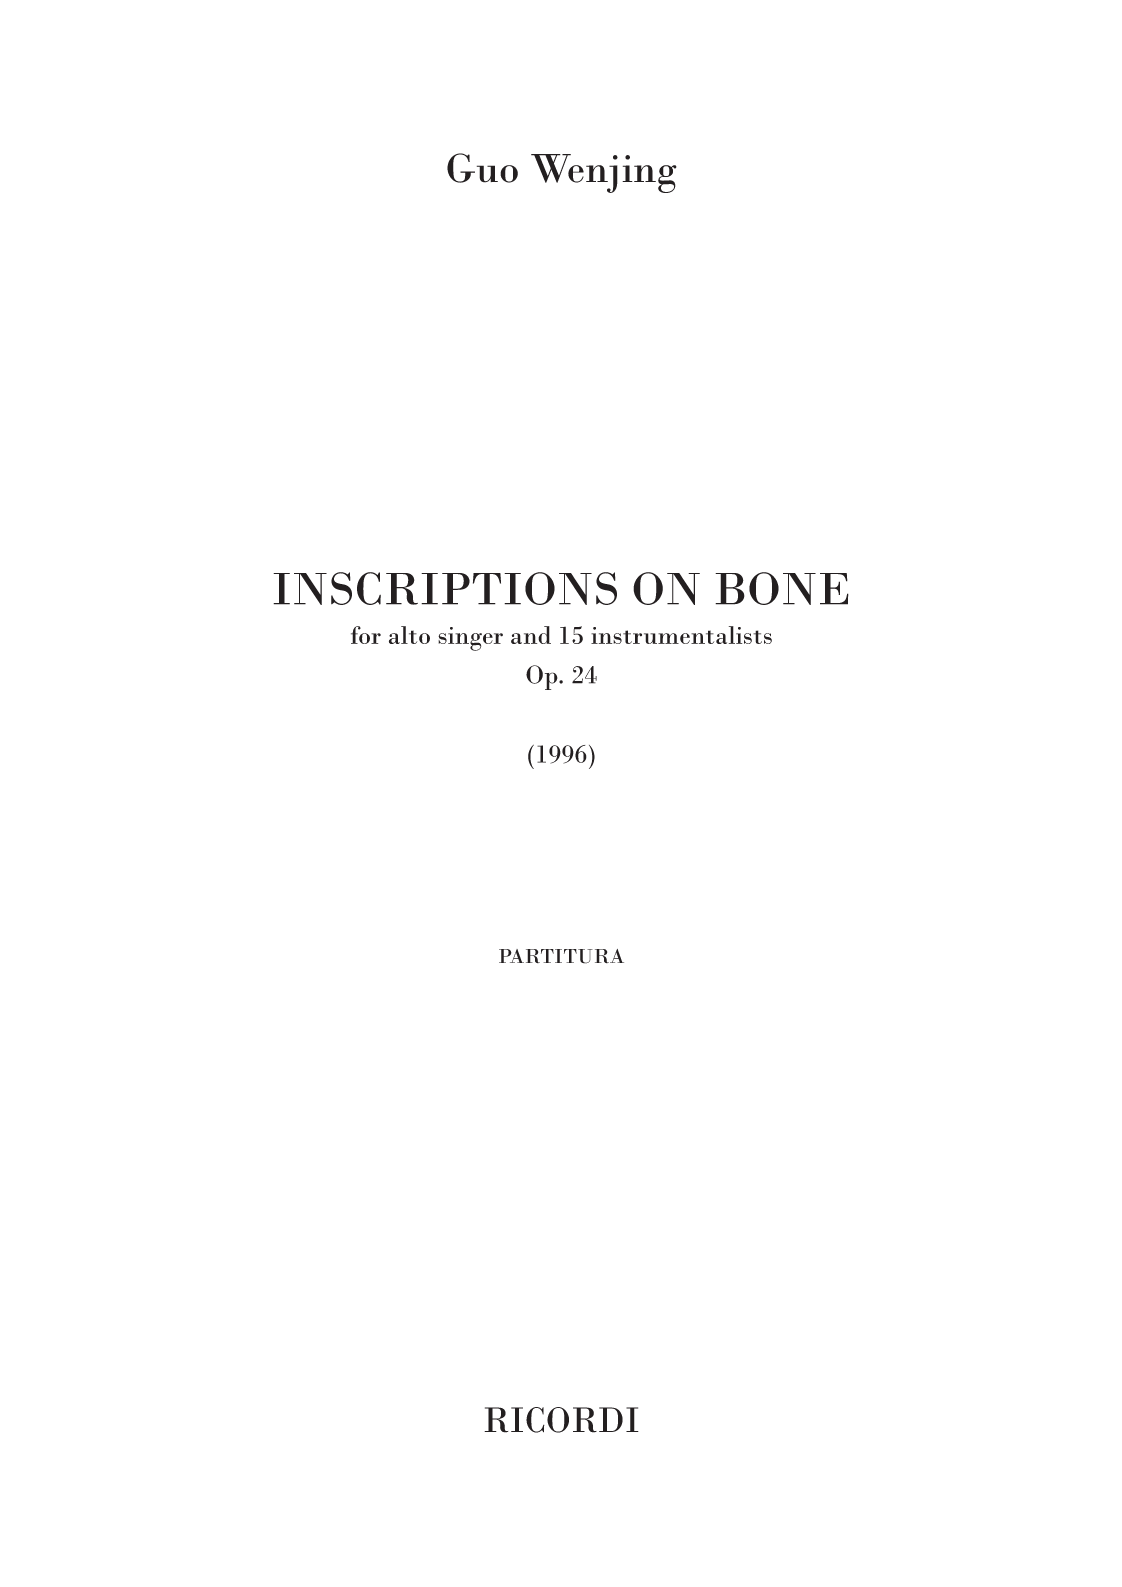 Inscriptions on bone (flipbook)